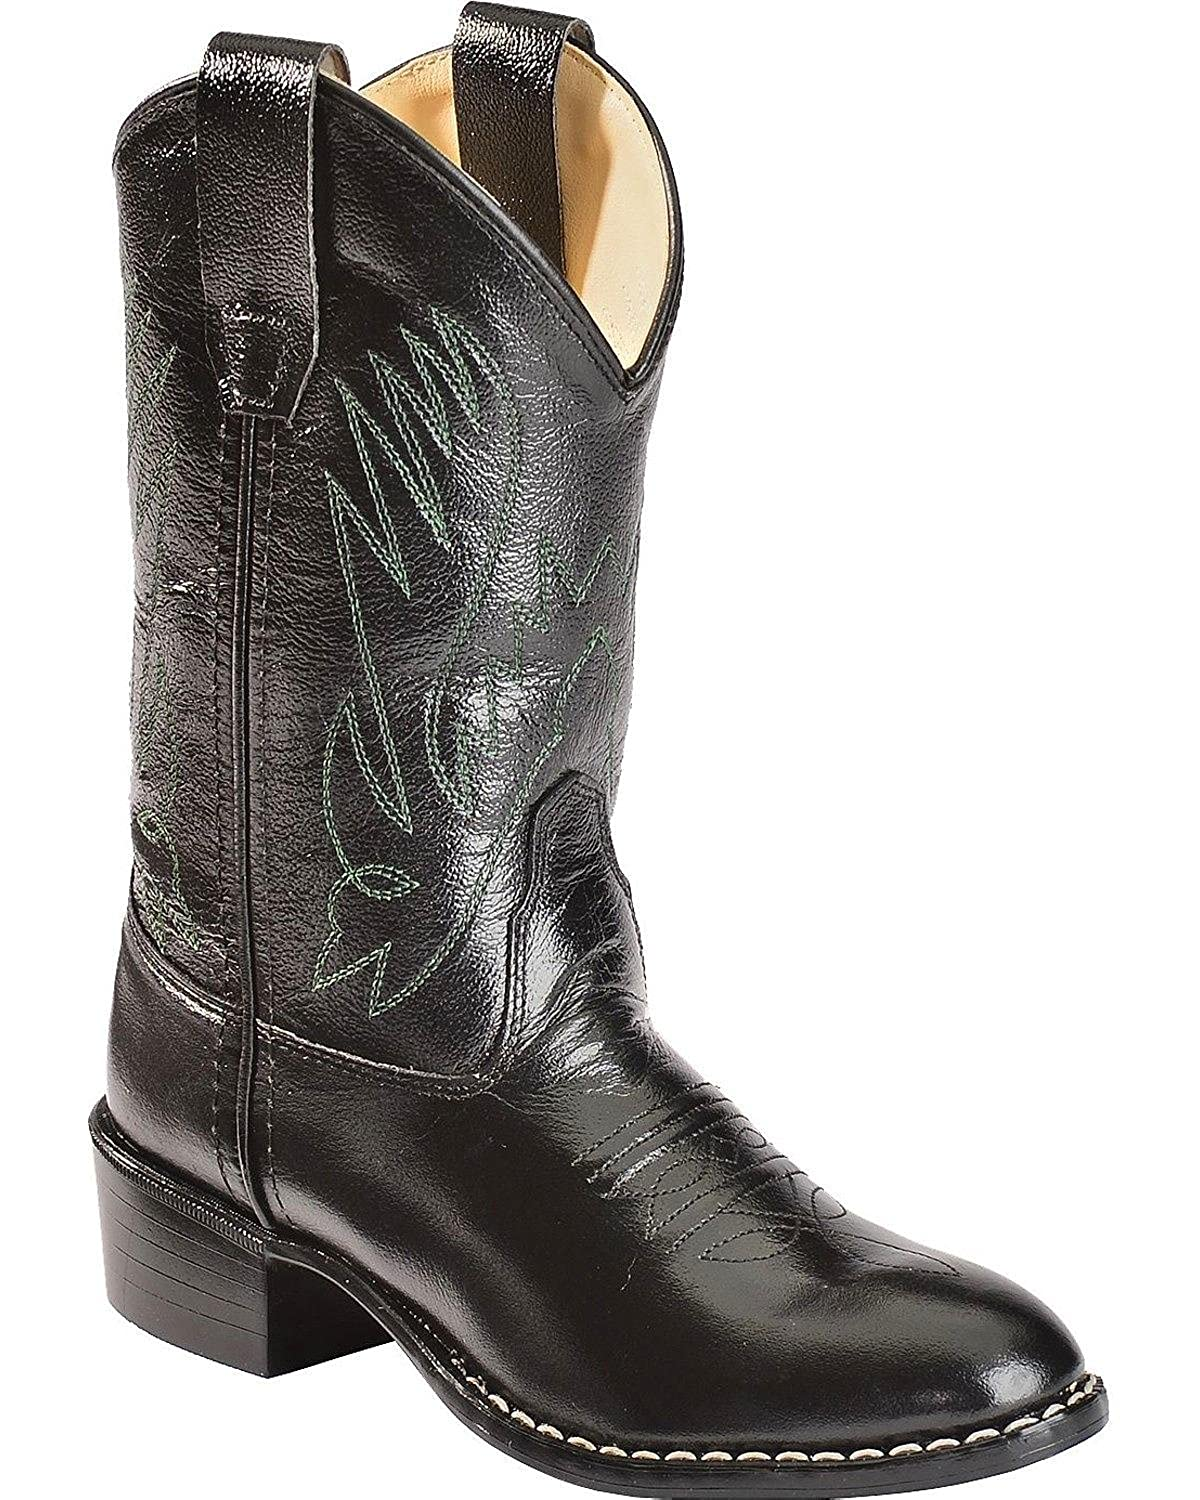 1110C Old West Boys Western Boot